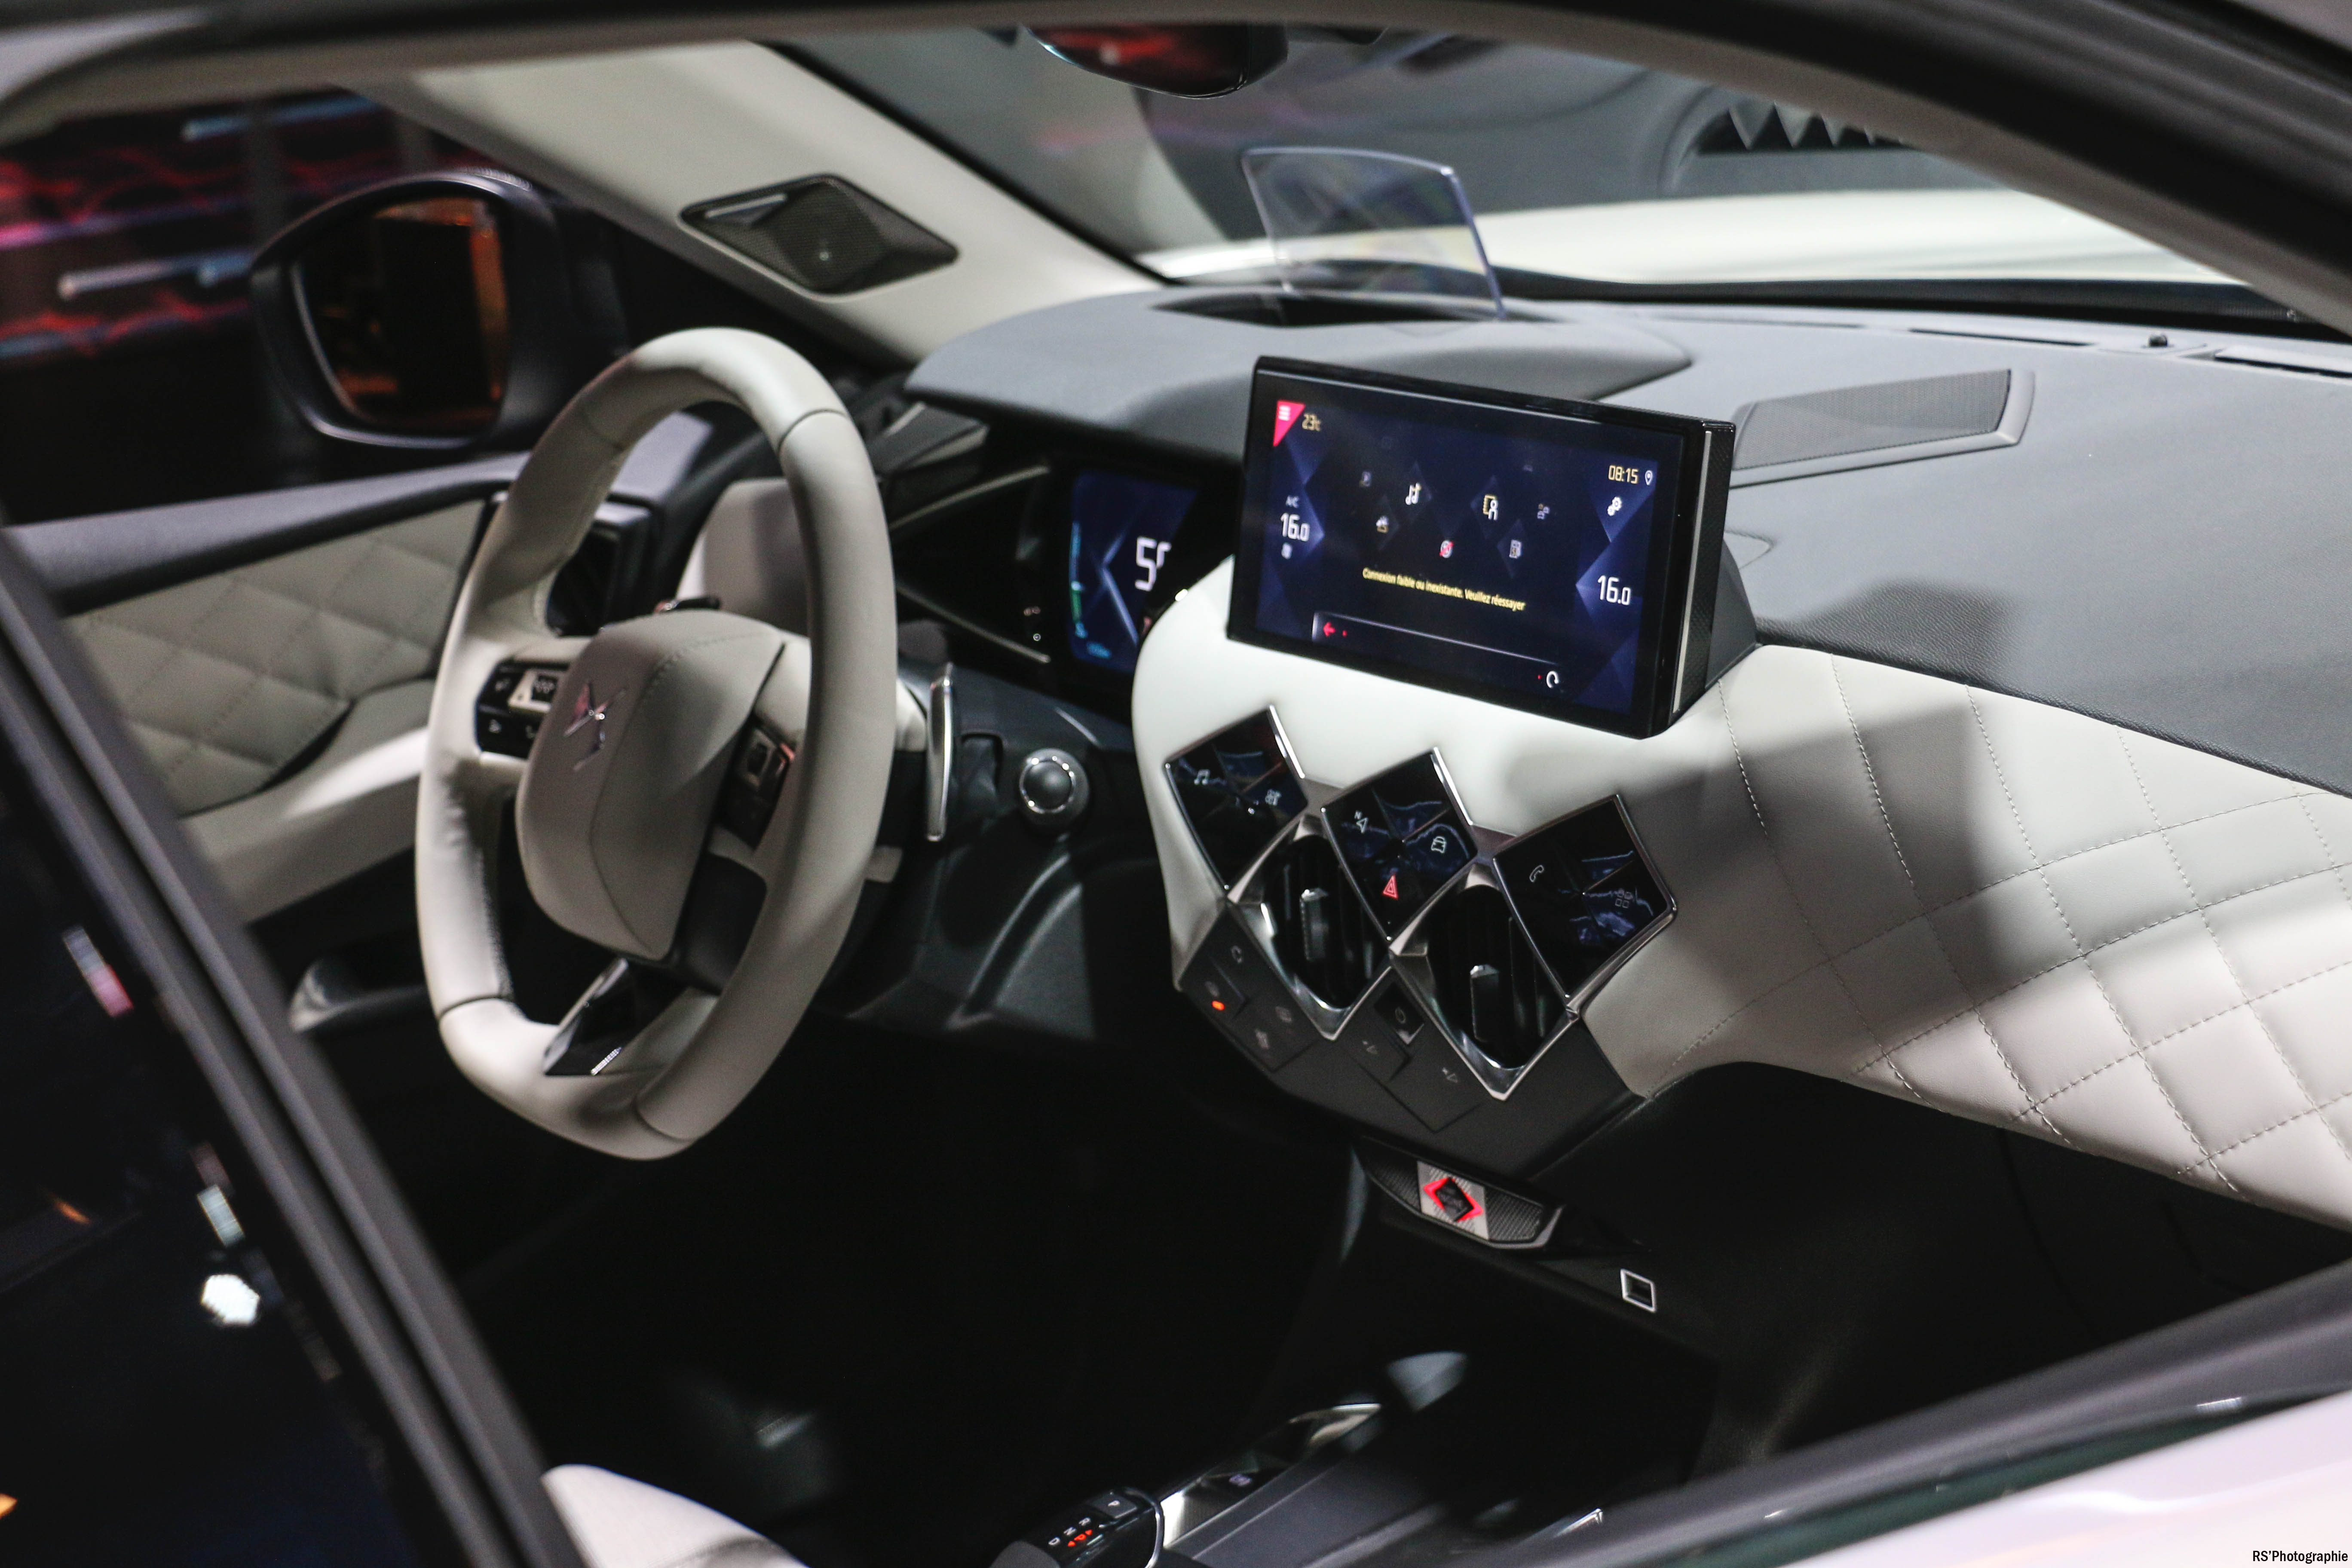 DS 3 Crossback E-Tense - interior - Paris Motor Show - 2018 - Mondial Auto - photo by Arnaud Demasier RS Photographie